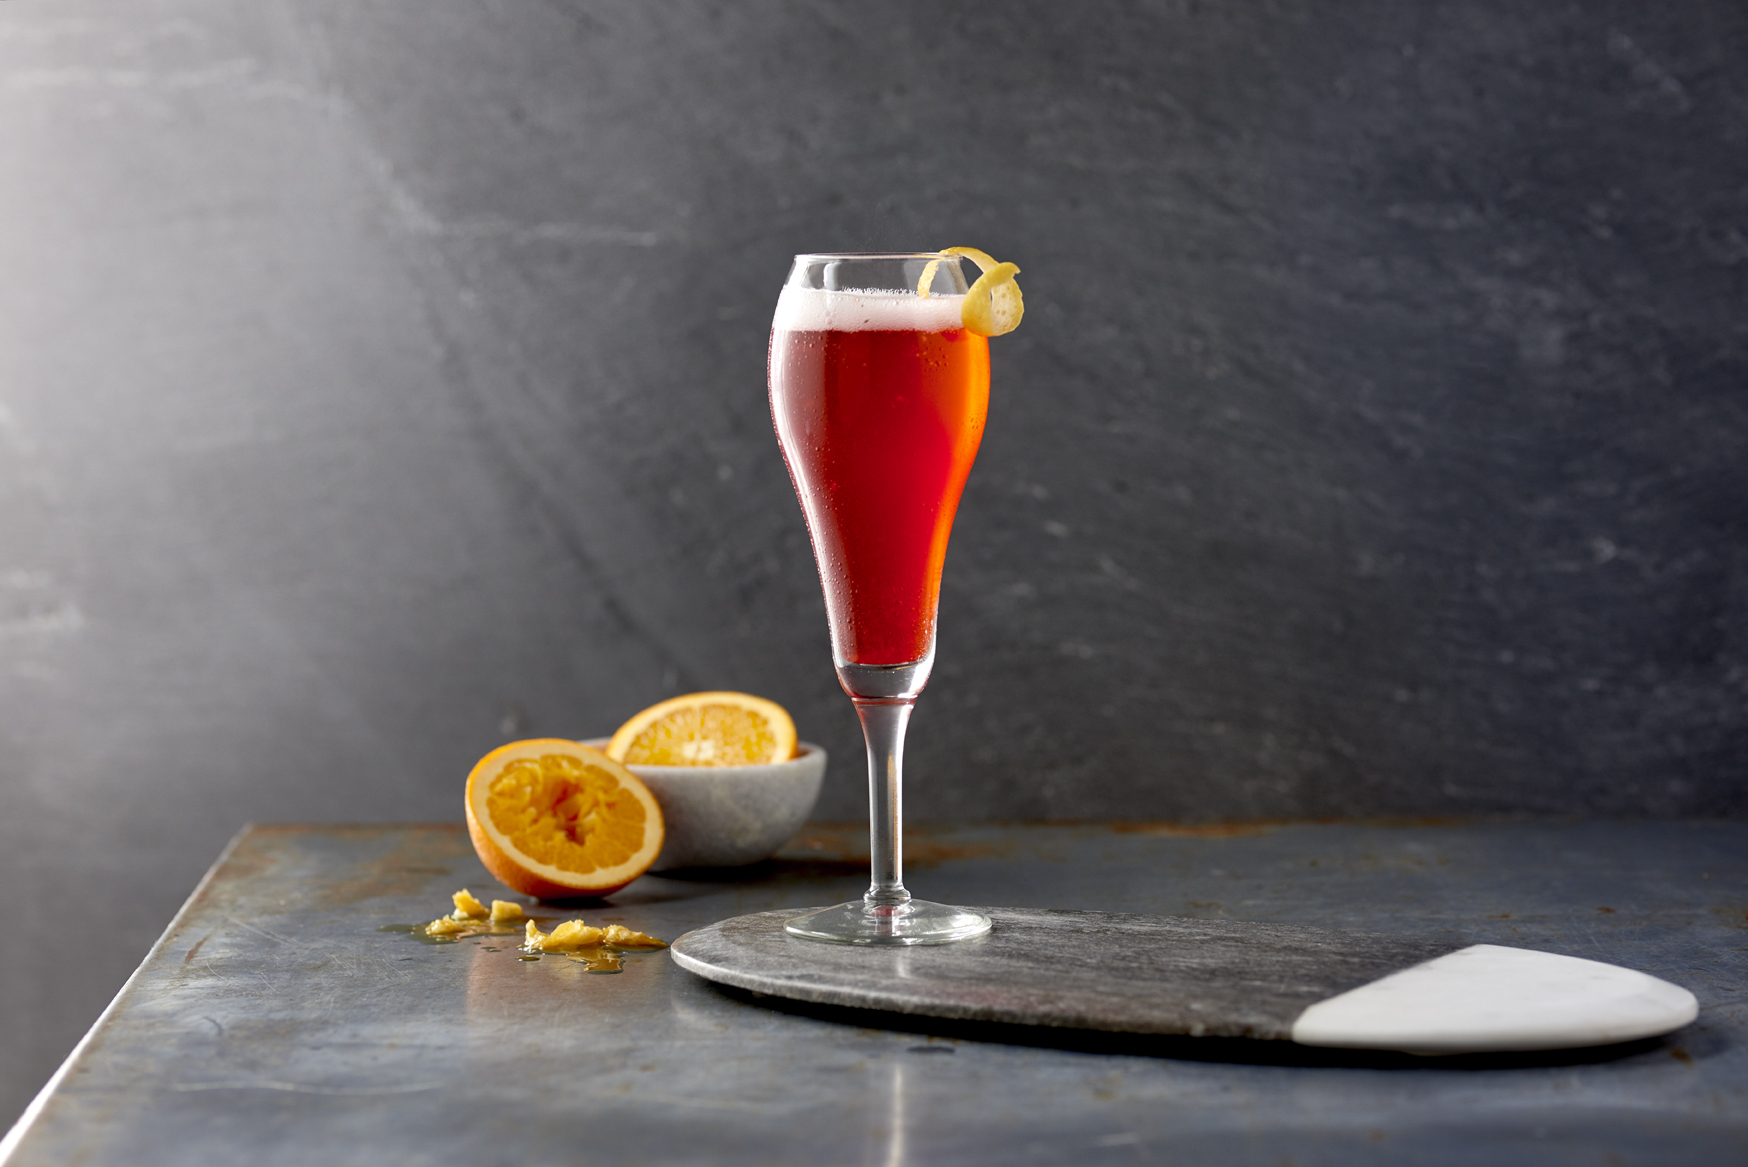 The perfect sexy Valentine's Day nightcap cocktail that will sure please any date. Zodiac Vodka's Black Cherry 75 will set the mood <3